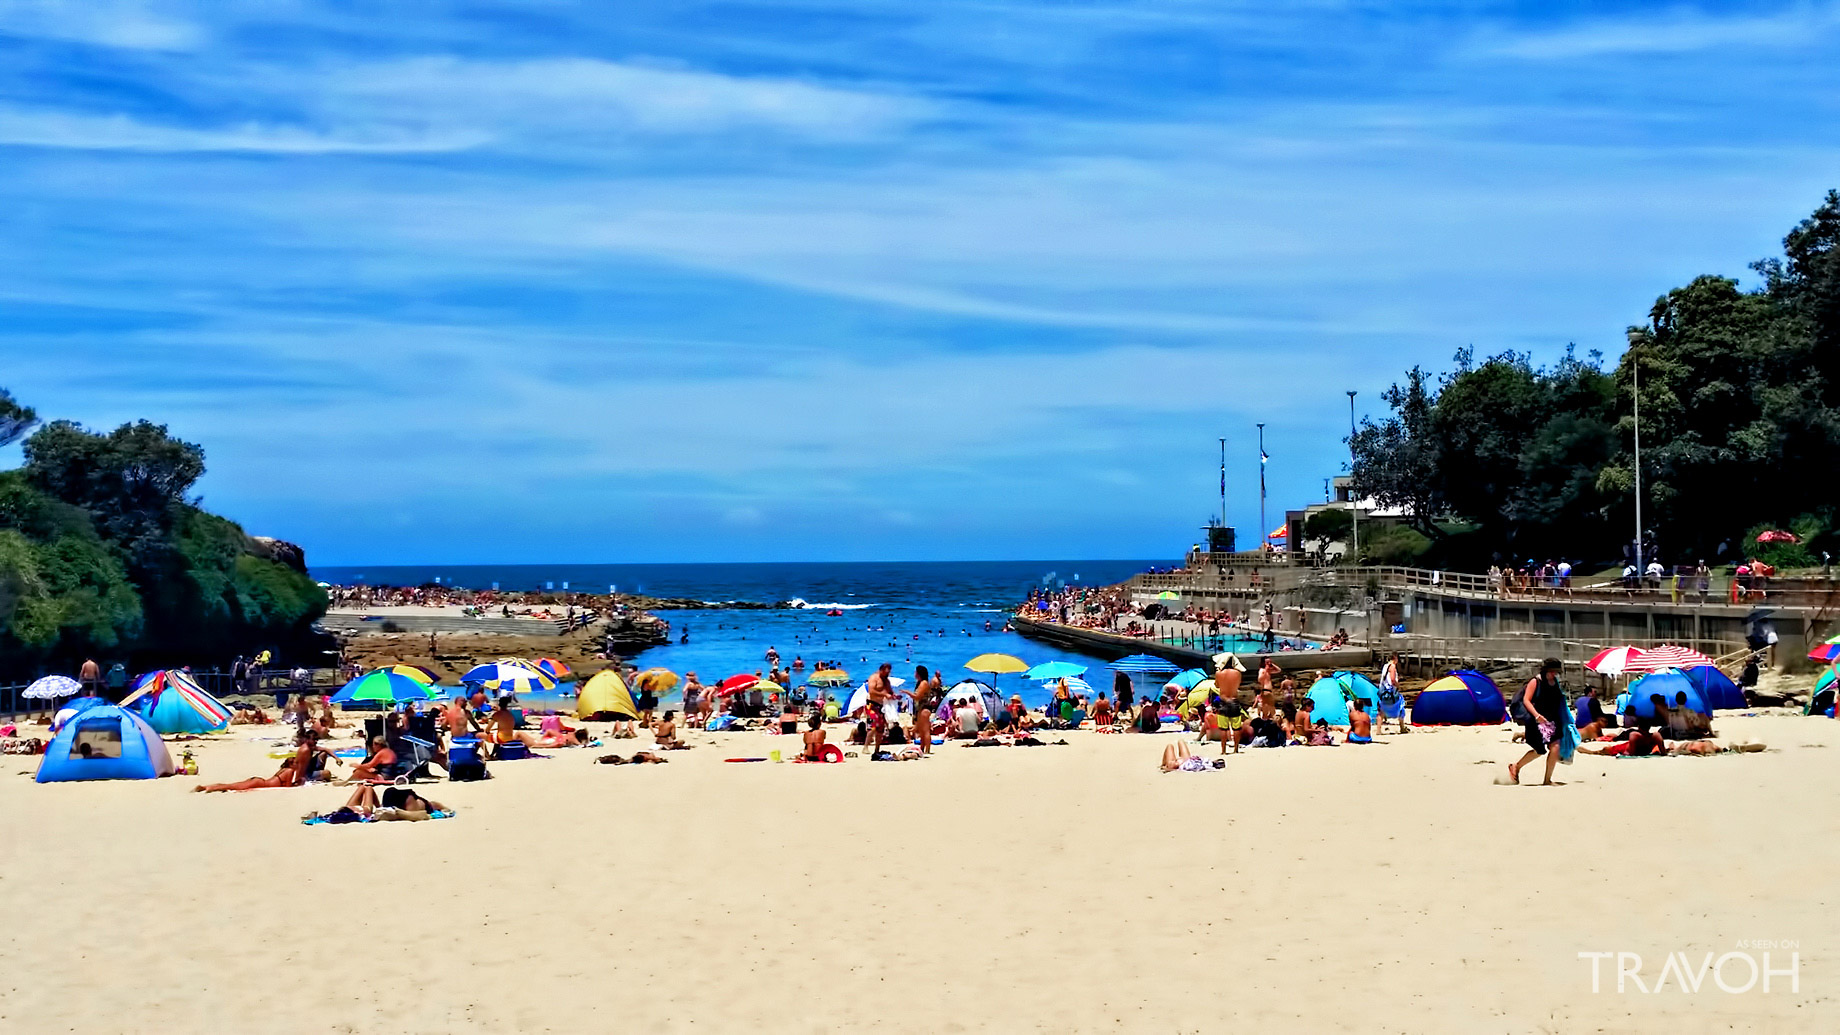 Clovelly Beach - Exploring 10 of the Top Beaches in Sydney, Australia